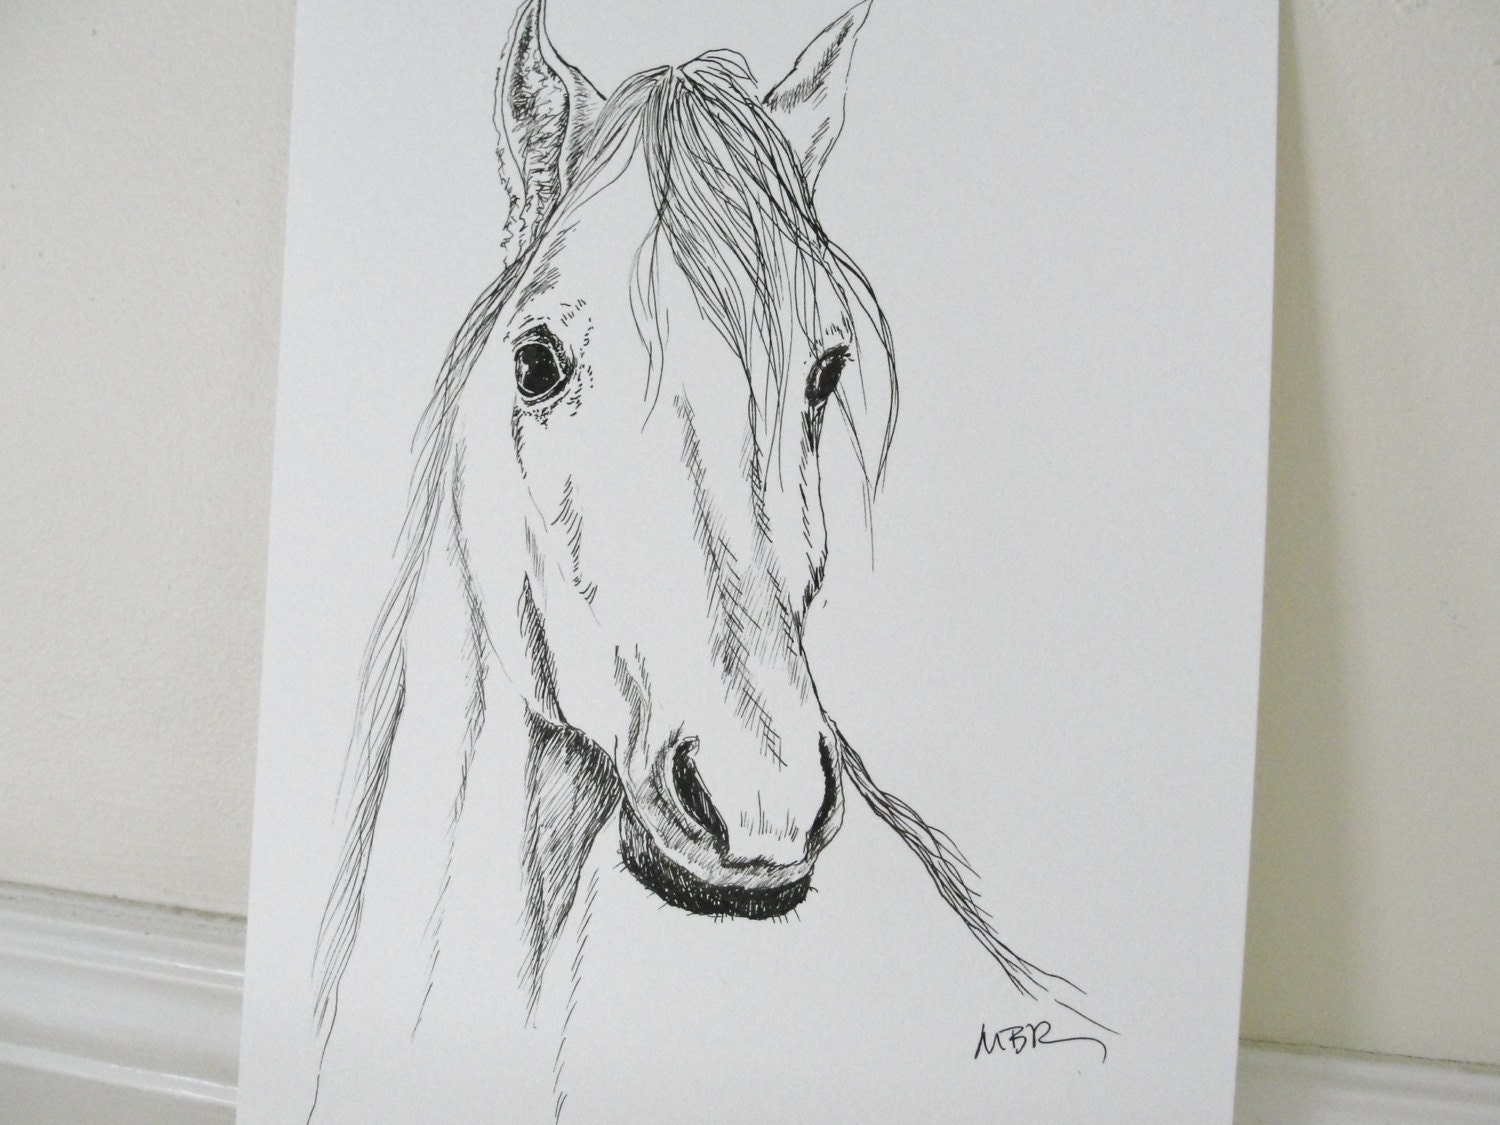 Horses drawings in pencil step by step - photo#7